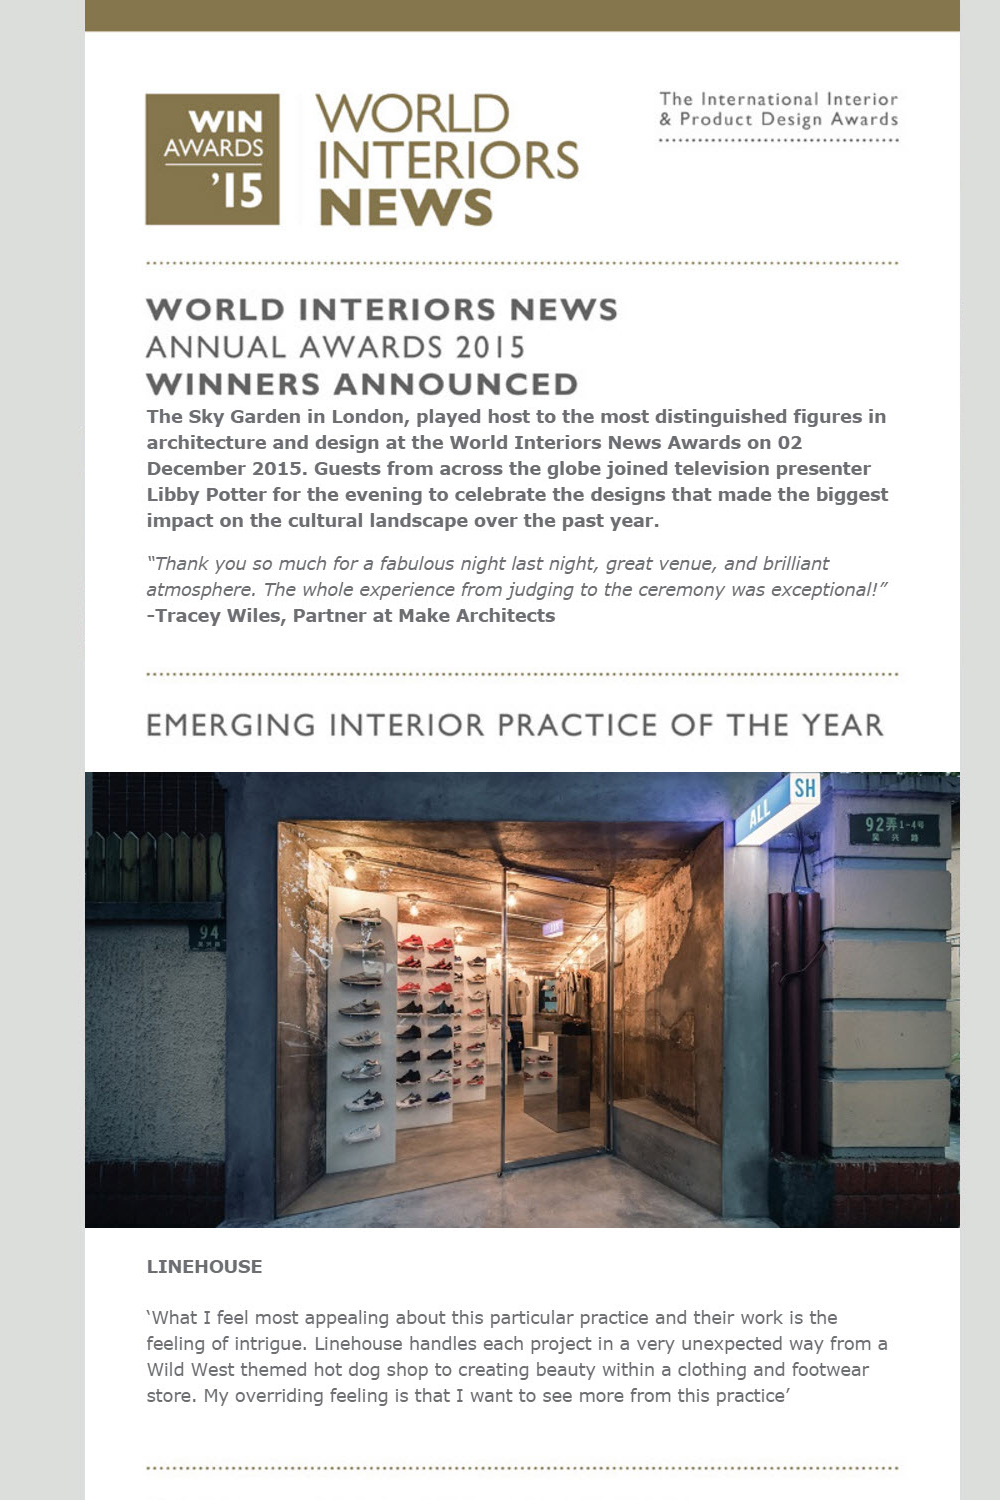 World Interior News, Linehouse, Nov 2015